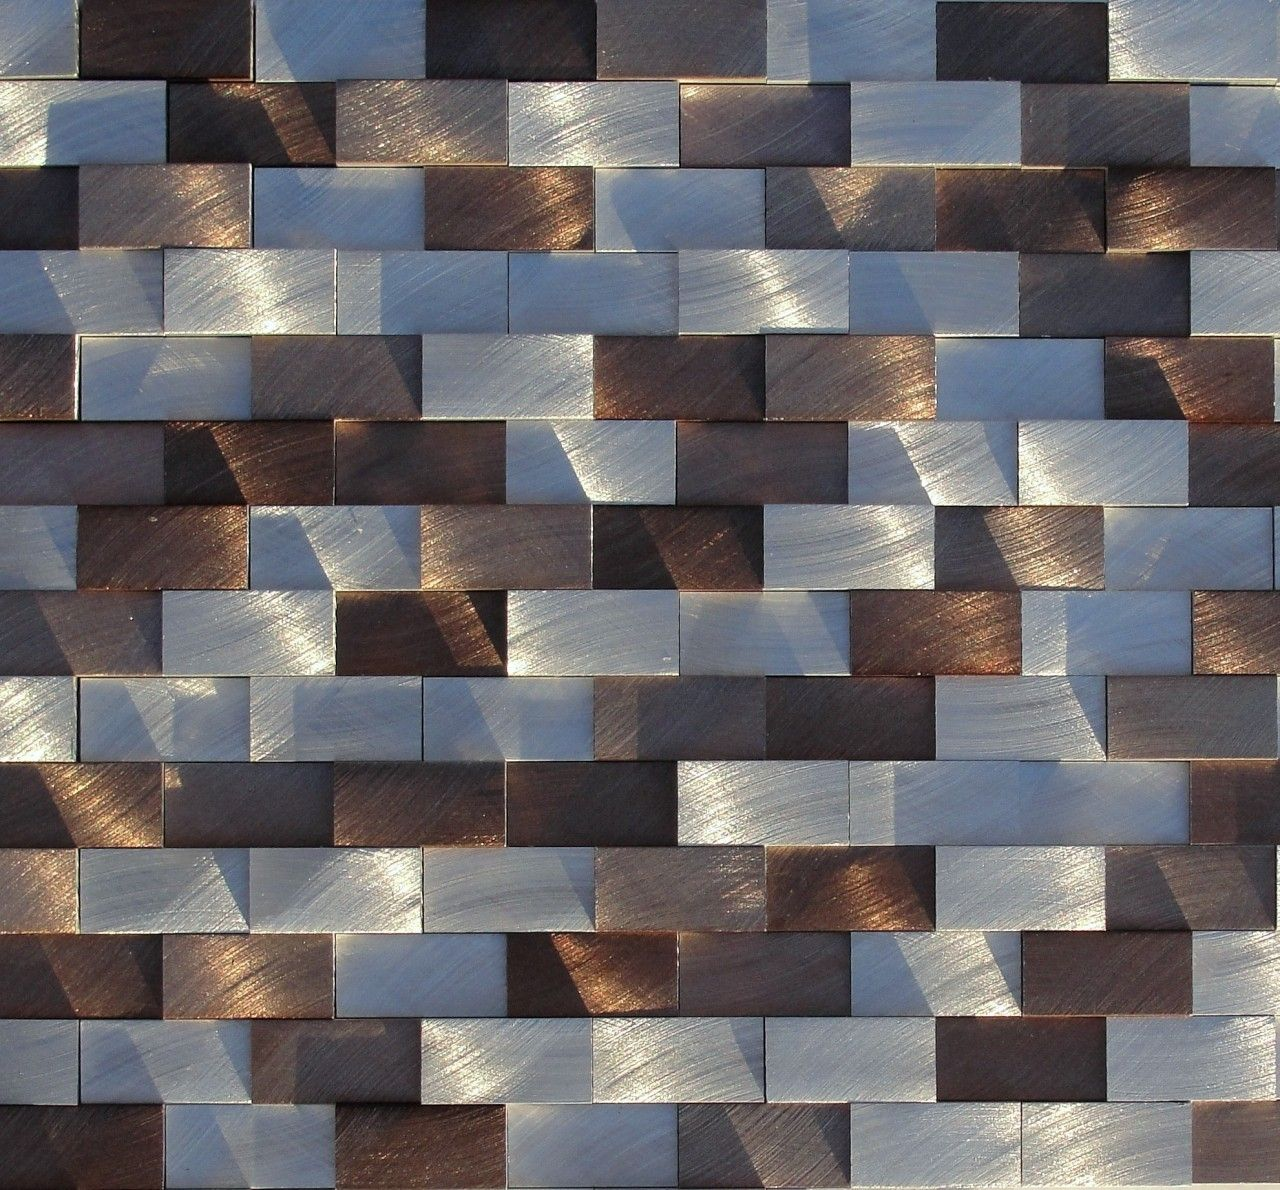 Aluminum Mosaic Tile Raised Chocolate Brick